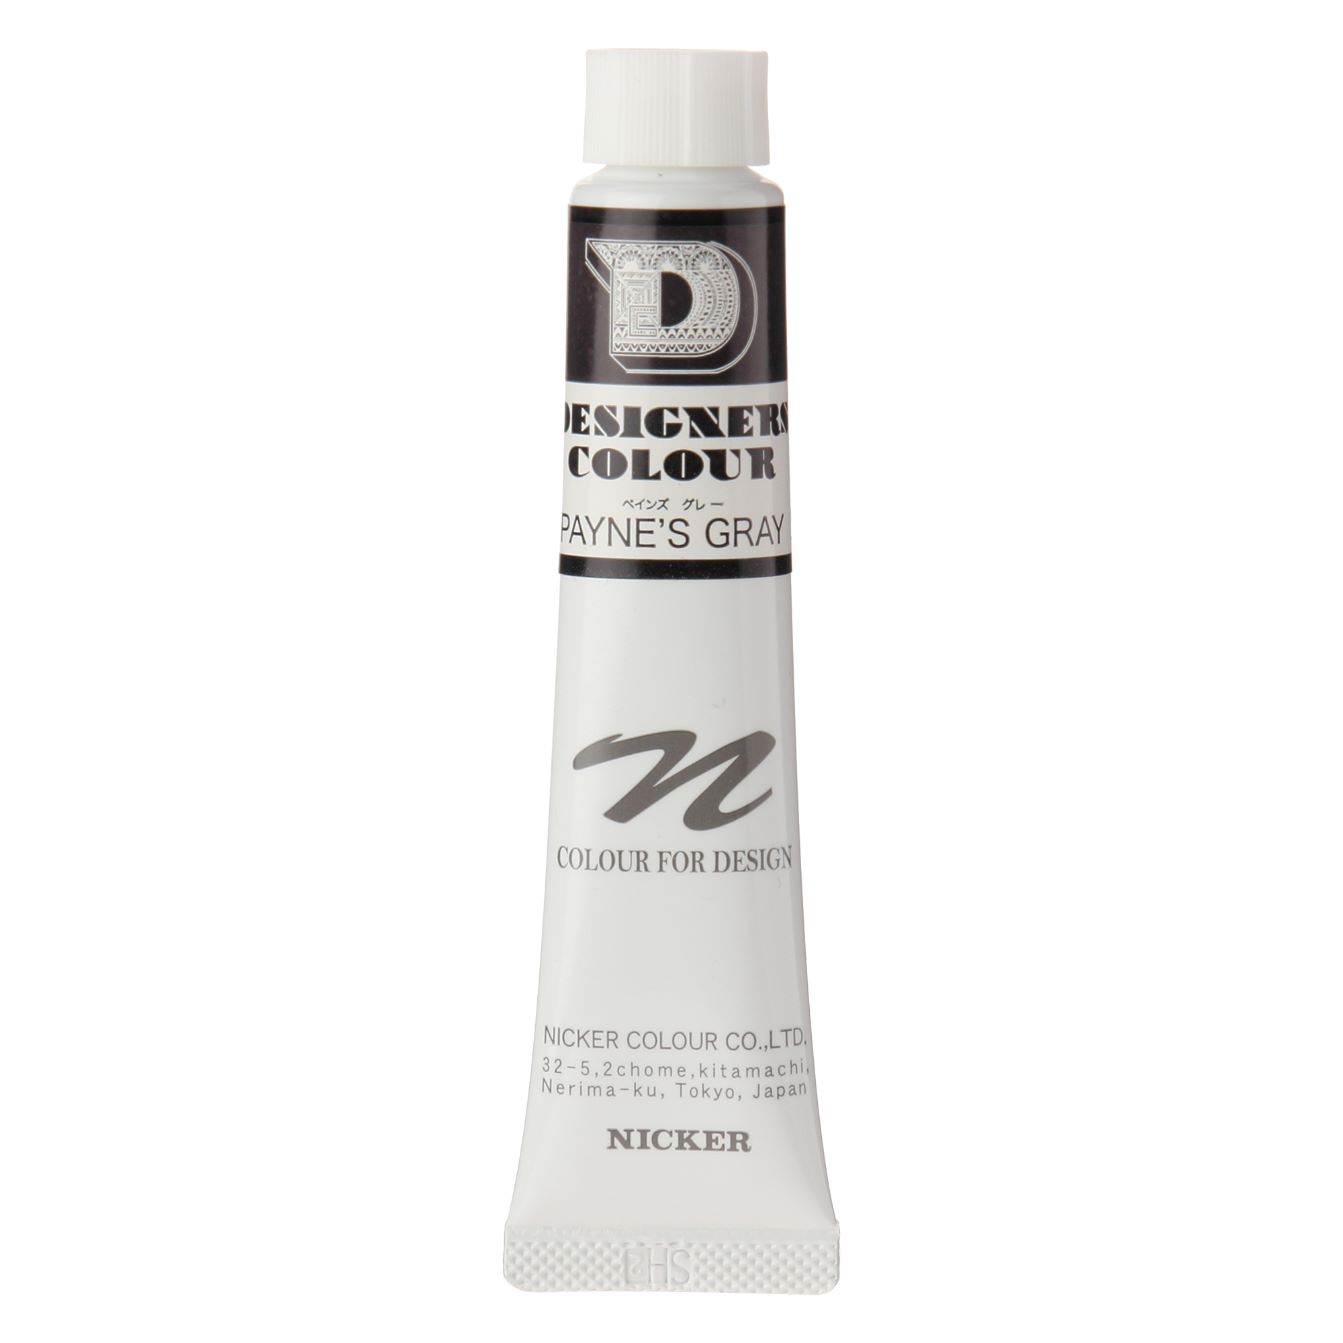 DESIGNERS COLOUR 20ml 595 PAYNE'S GRAY